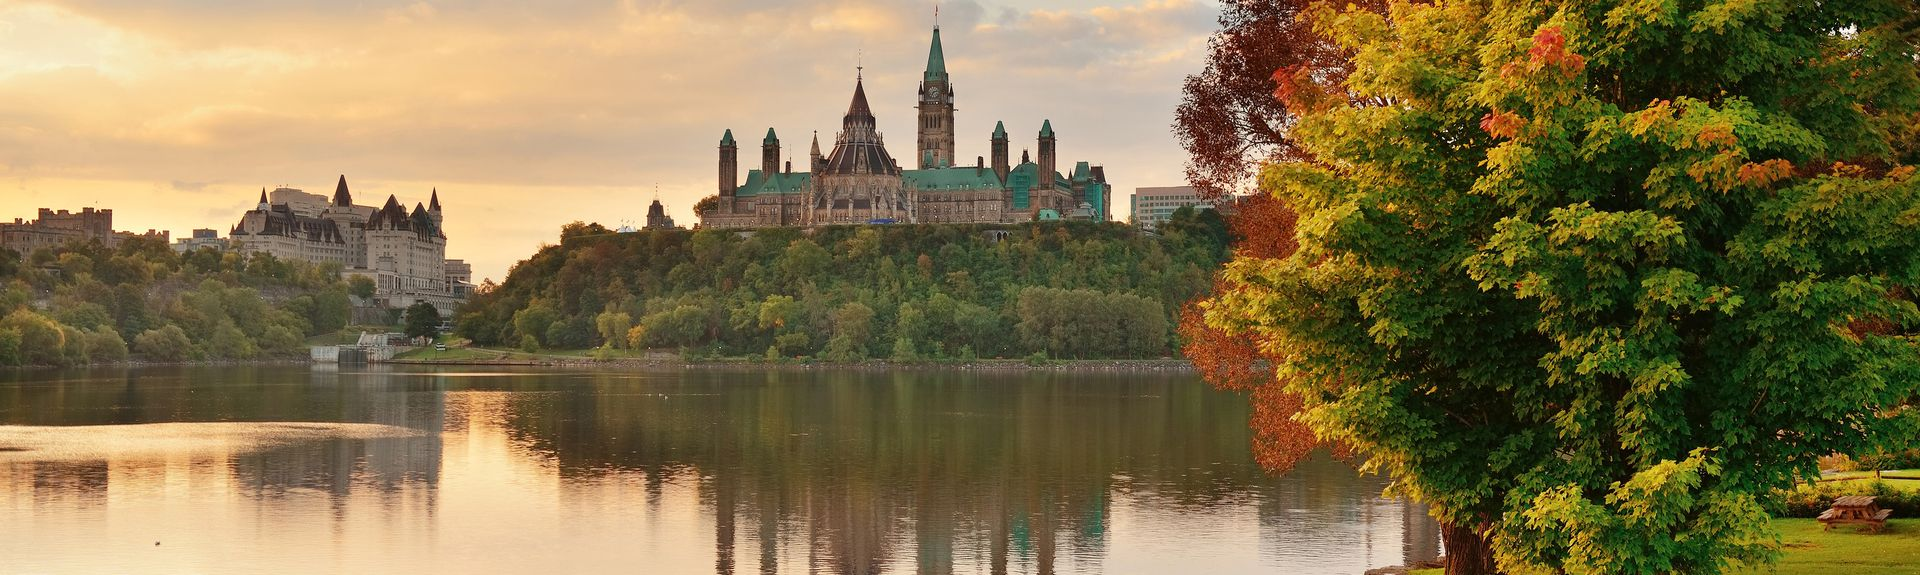 Ottawa, ON, CA Vacation Rentals: cottage rentals & more | Vrbo